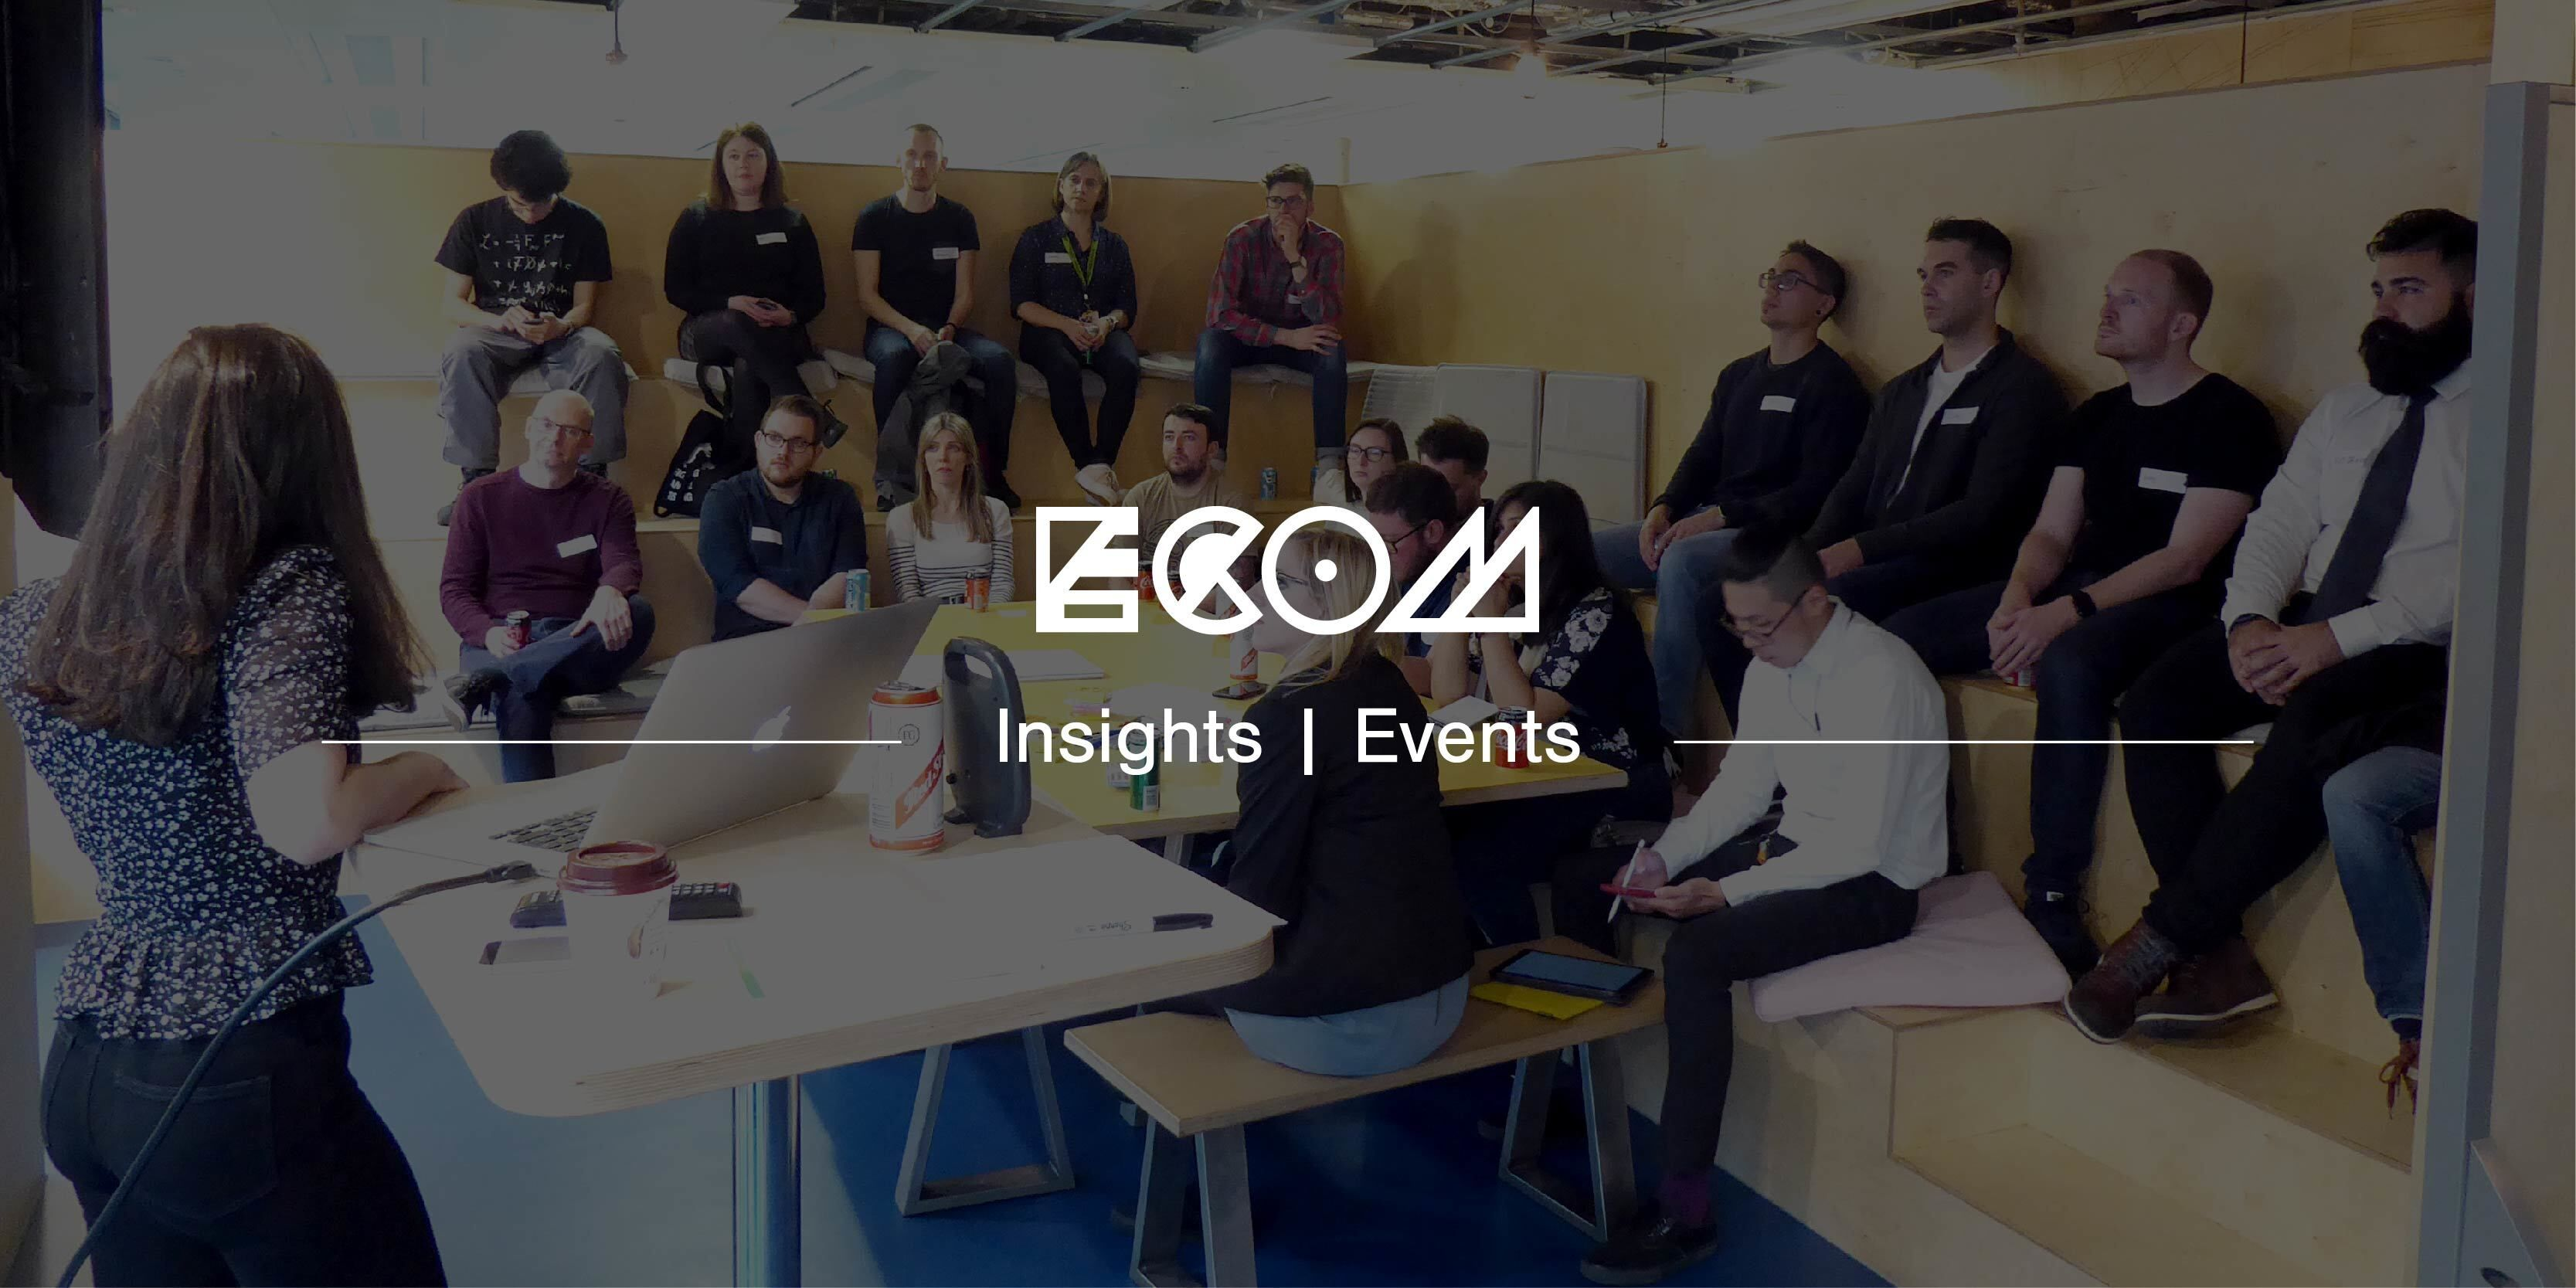 ECOM insight banner for an event blog about UX Sessions Manchester